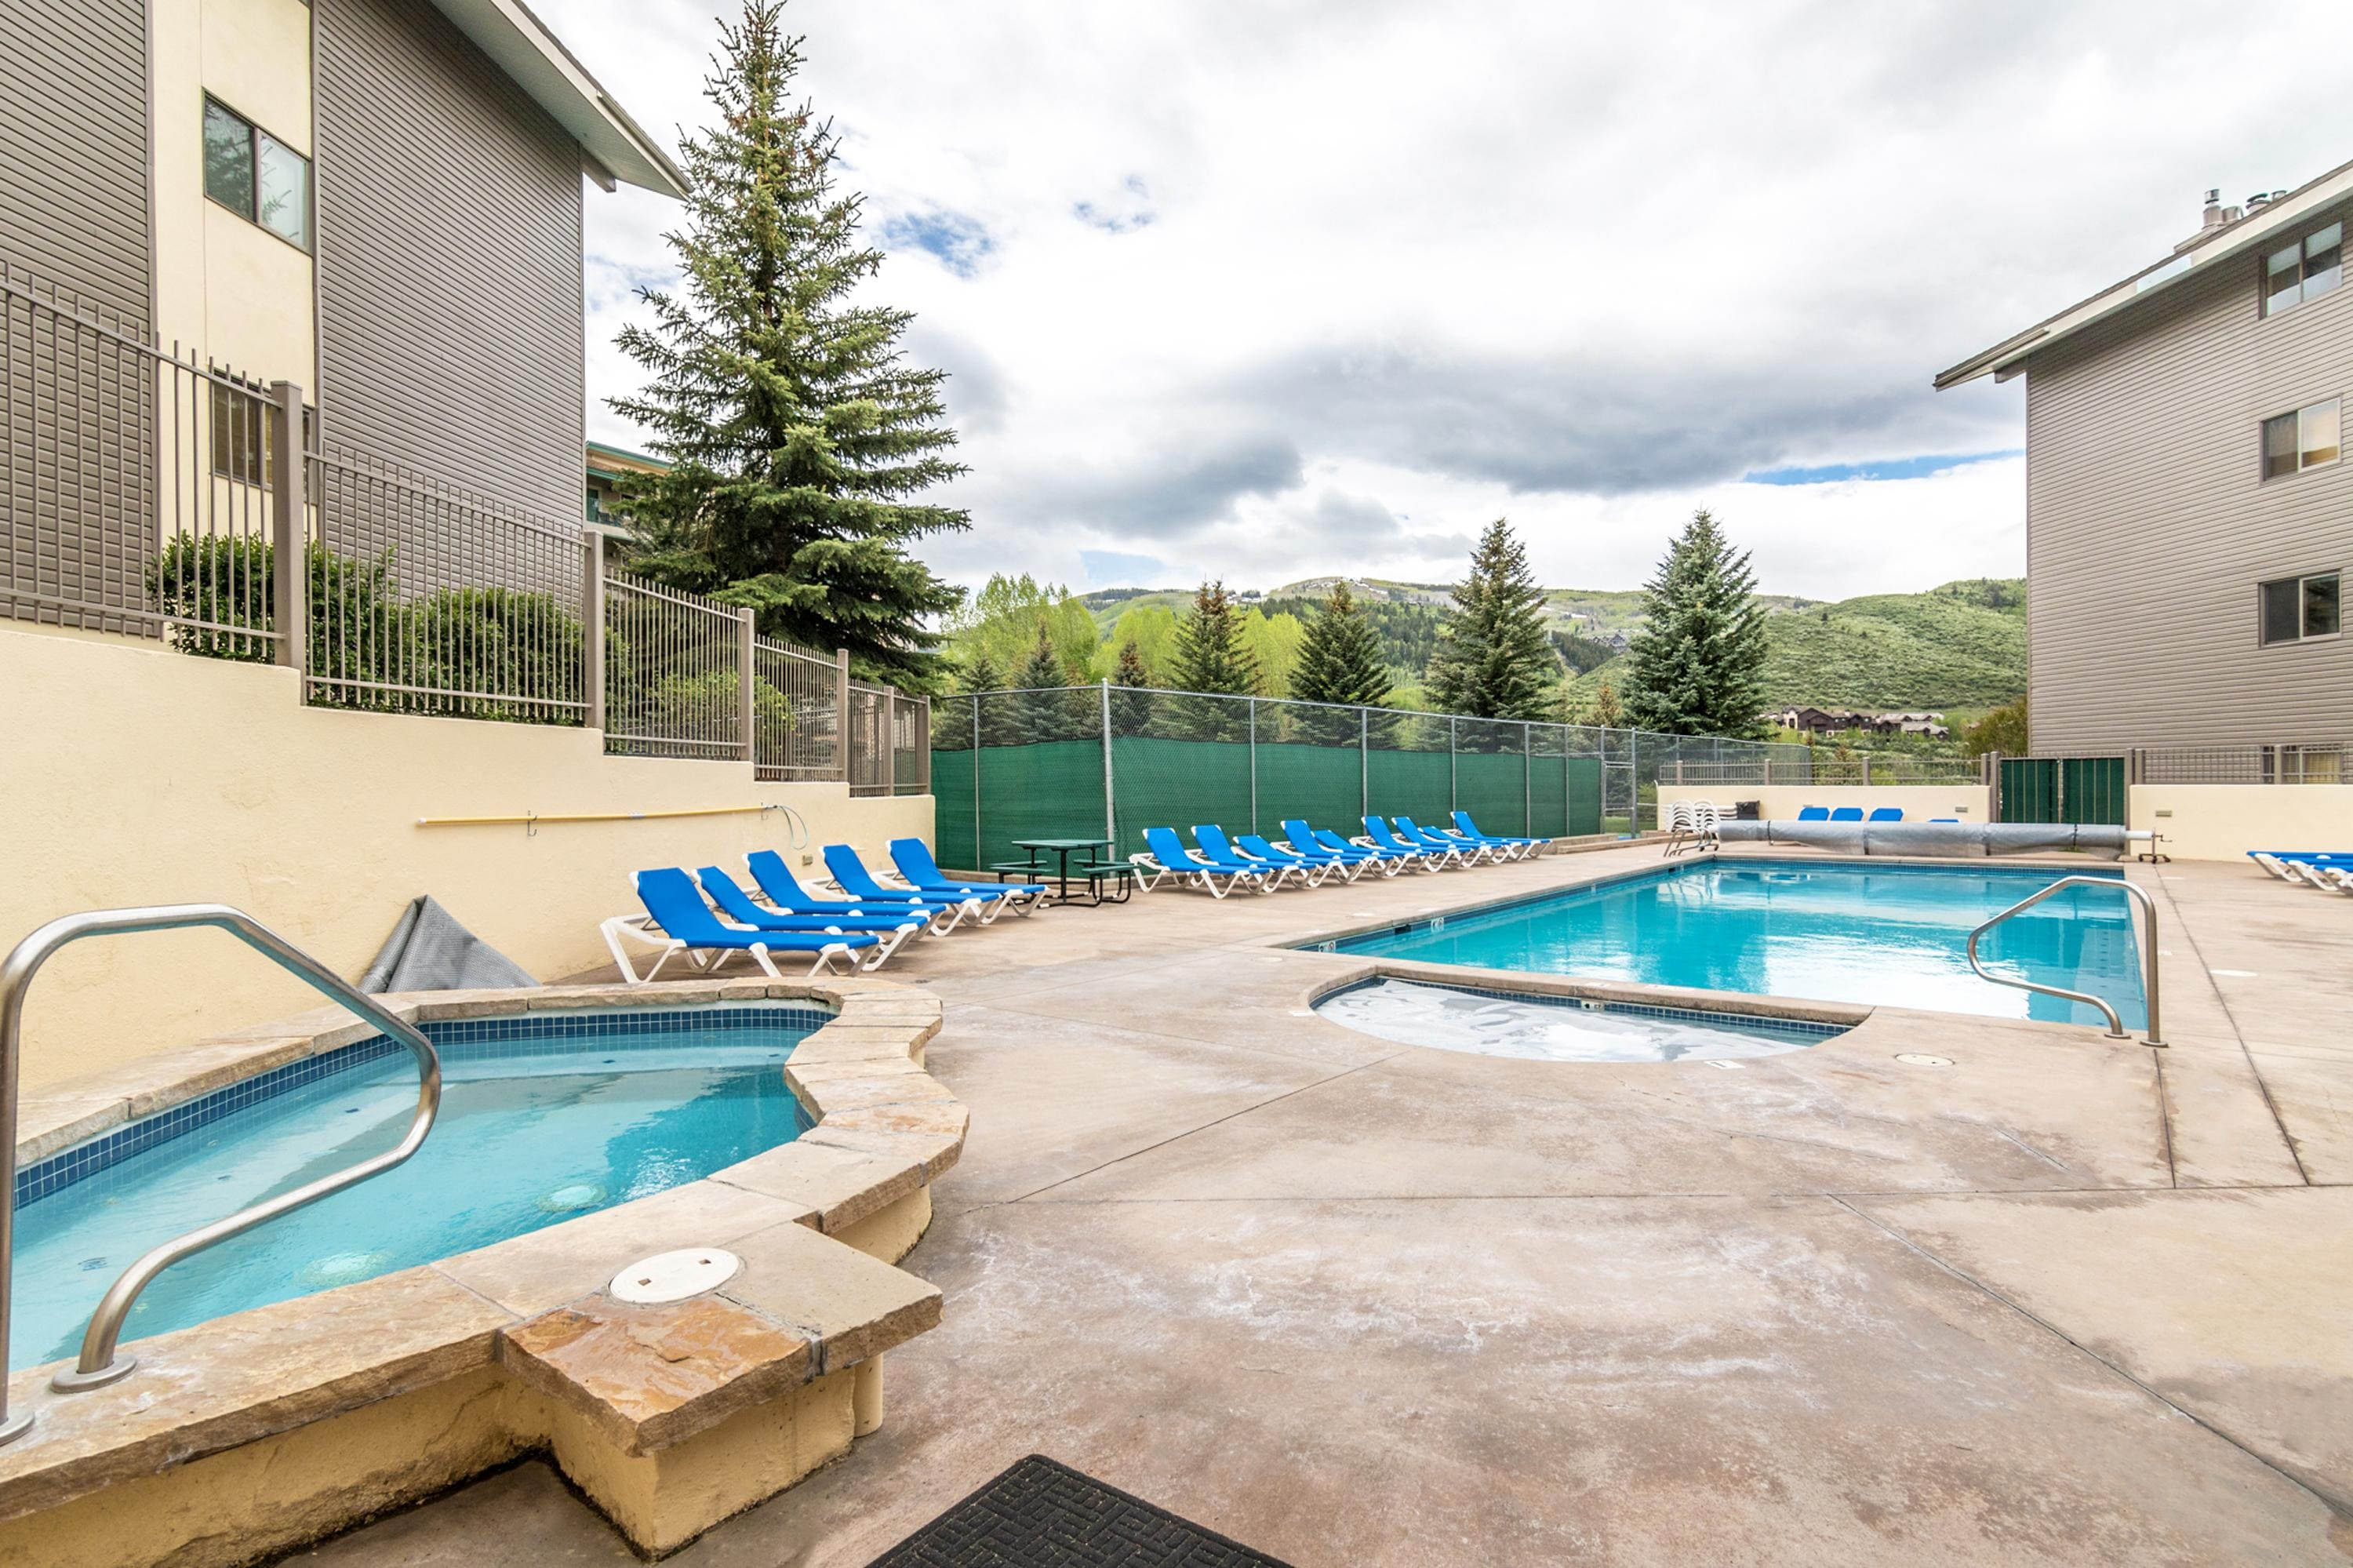 Enjoy resort-style amenities, including a year-round heated pool and multiple hot tubs.